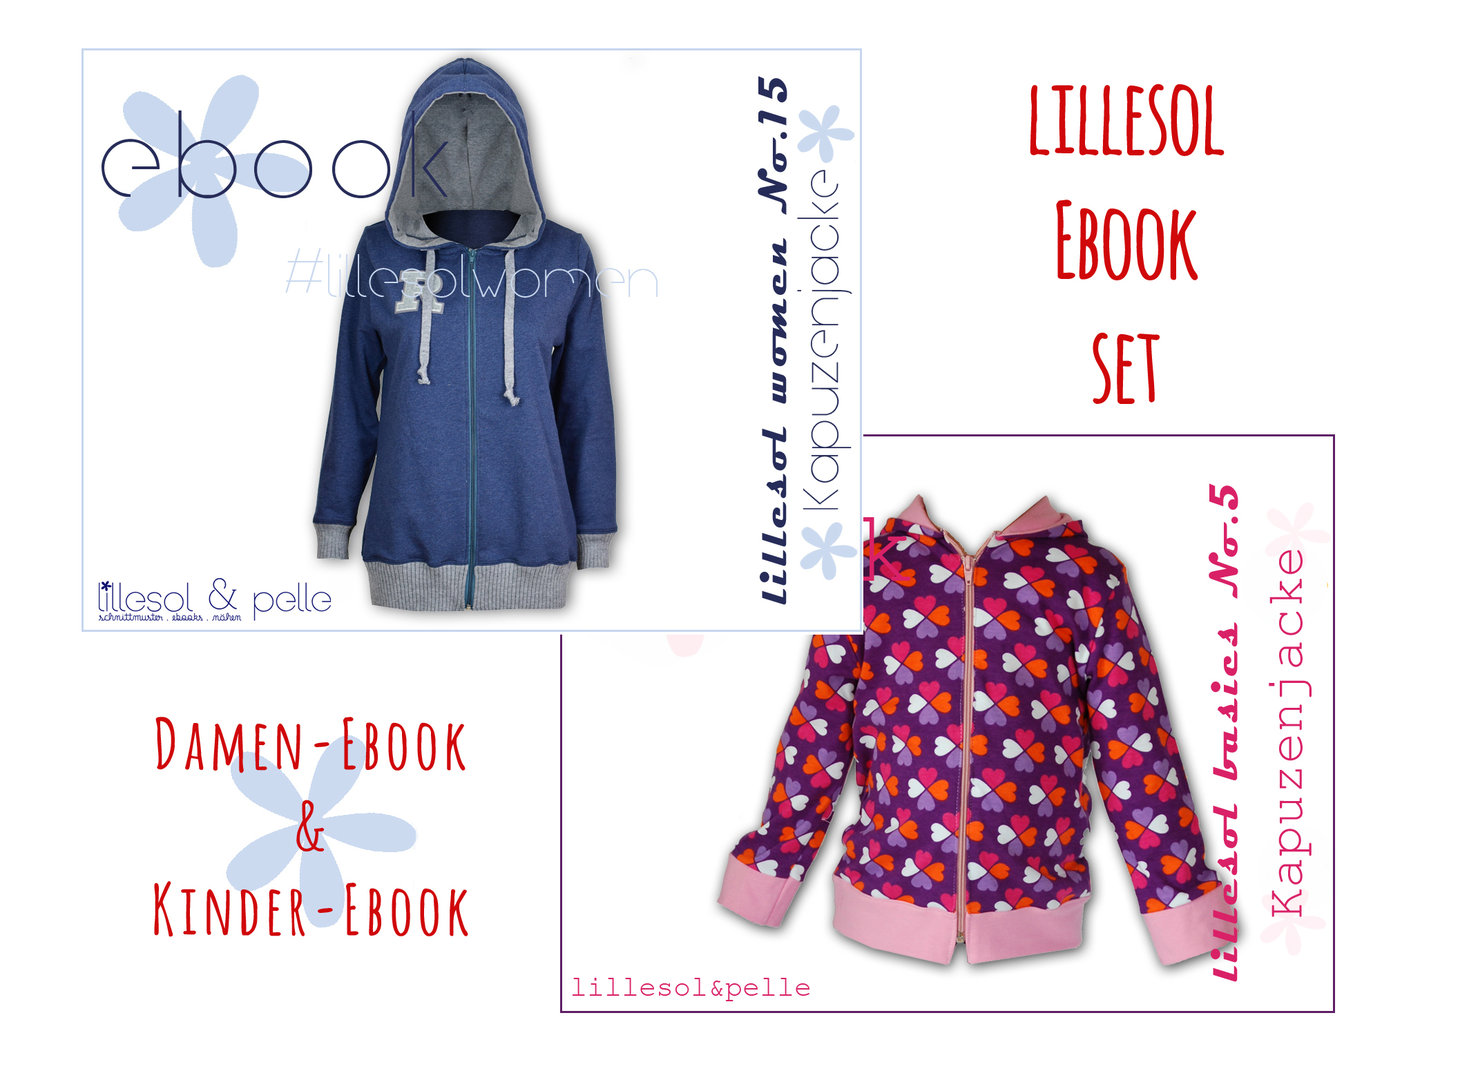 lillesol ebook set basic No.5 und women No.15